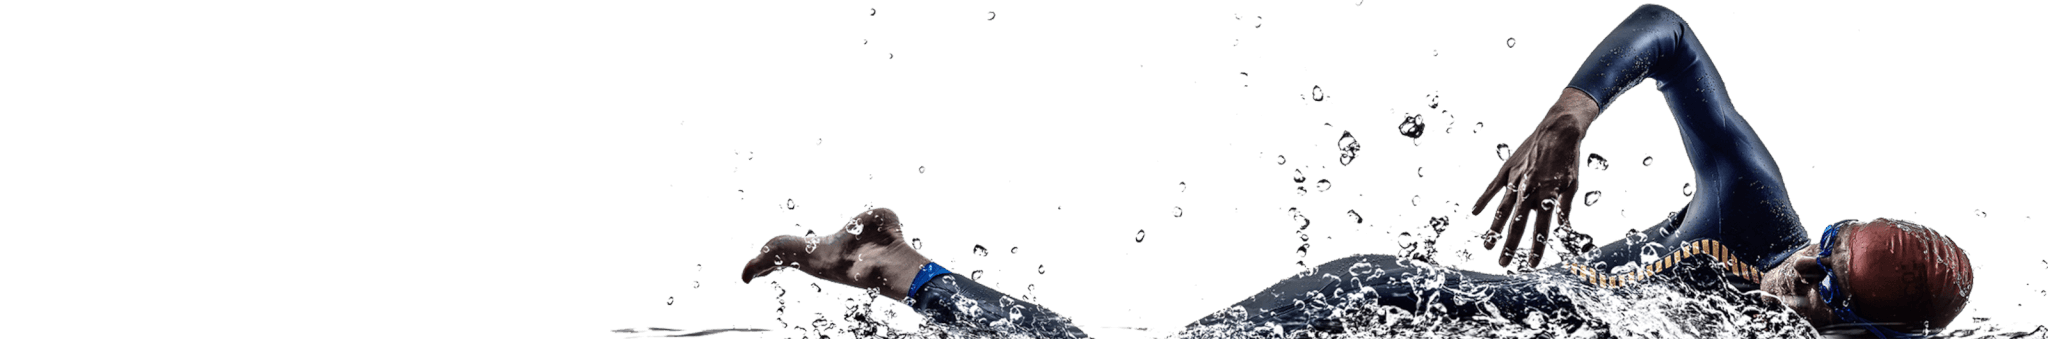 http://www.ndrowing.com/wp-content/uploads/2017/10/inner_swimmer.png